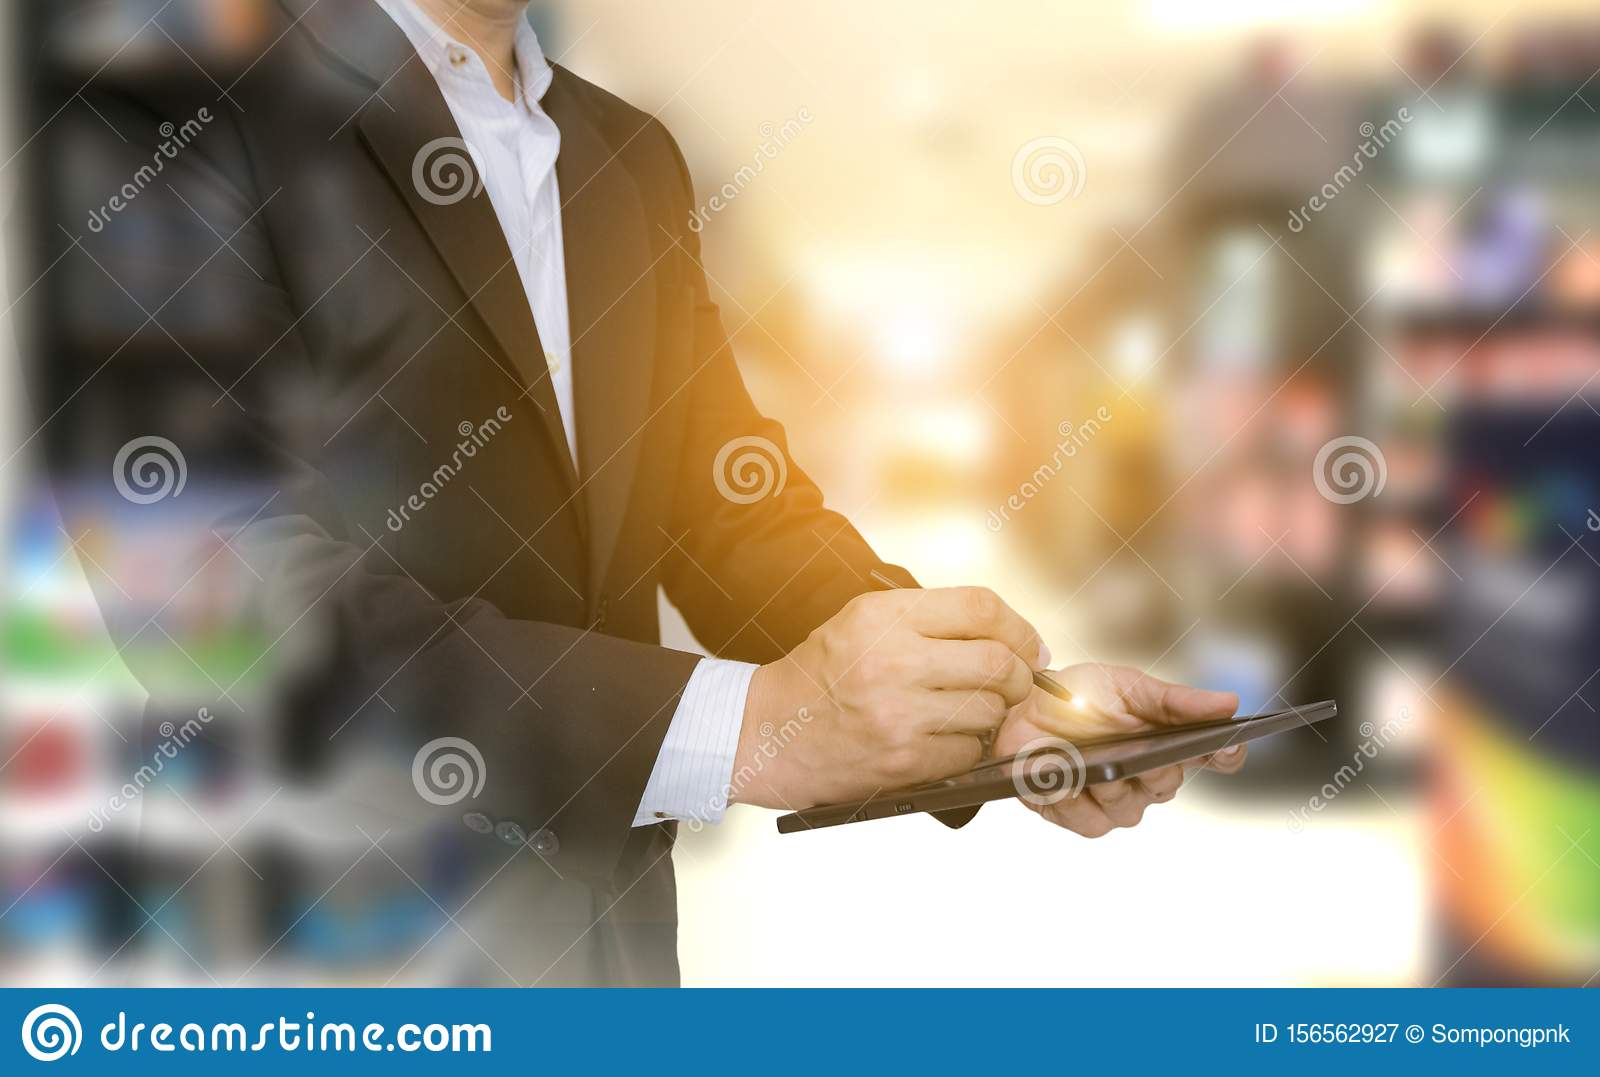 Double exposure business of checking products as hand holding the tablet